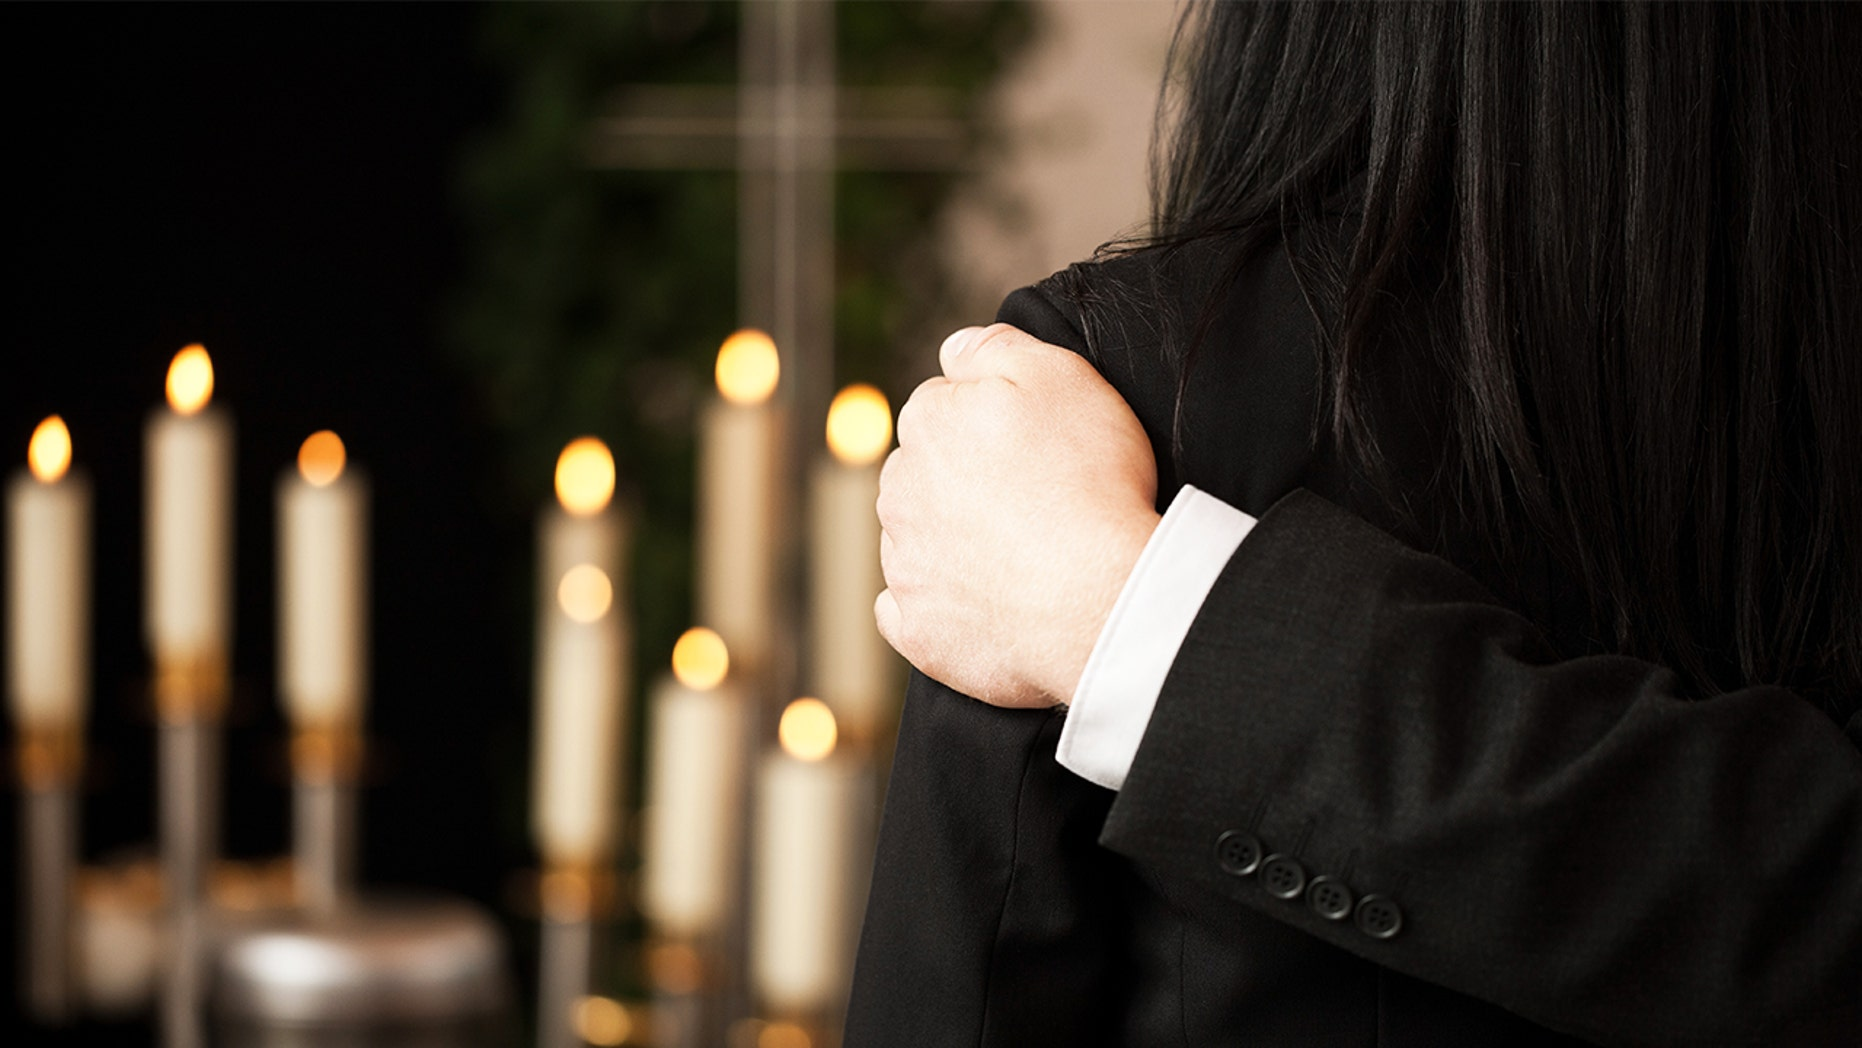 A woman recounted her worst first date when the guy took her to his grandmother's funeral.